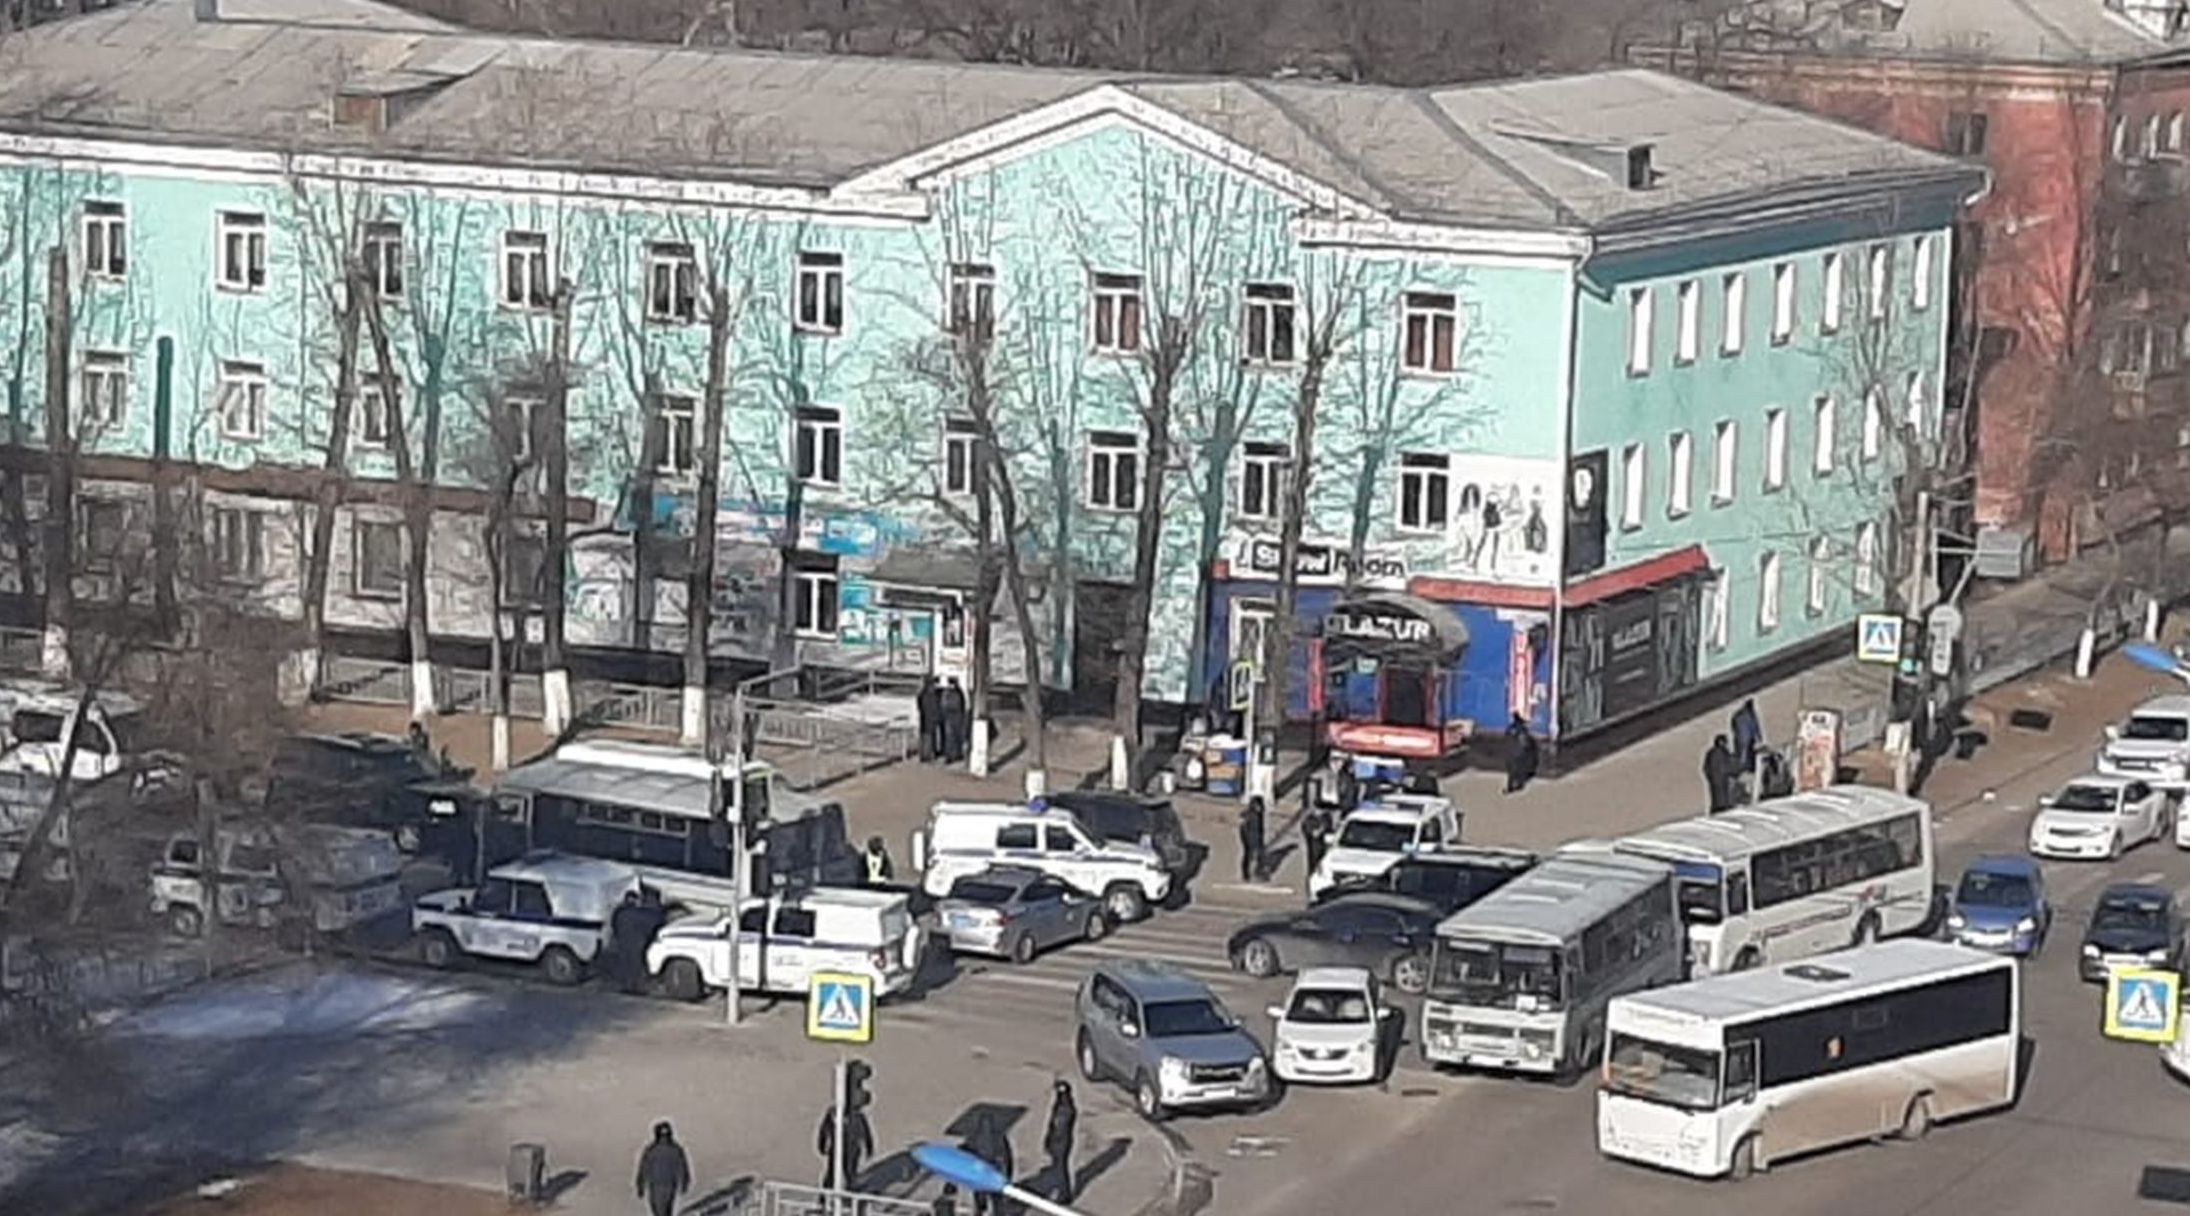 Shooting Attack in Blagoveshchensk, Russia